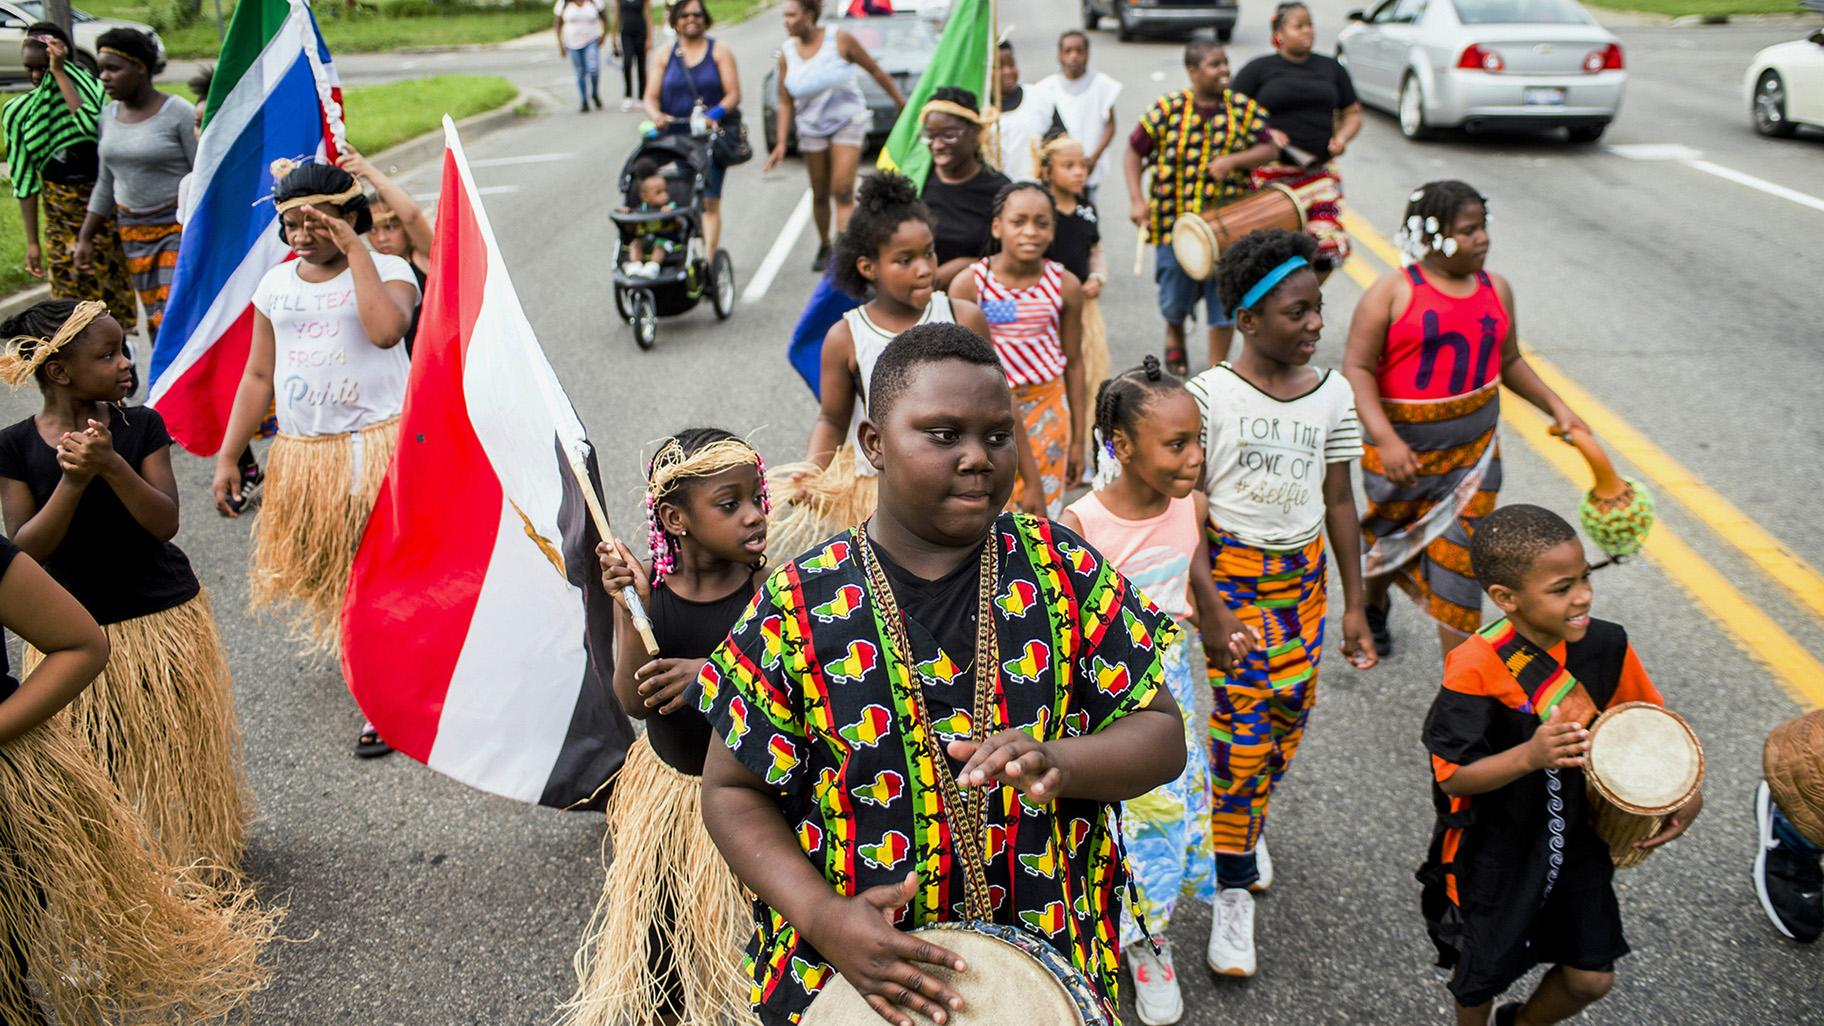 In this June 19, 2018, file photo, Zebiyan Fields, 11, at center, drums alongside more than 20 kids at the front of the Juneteenth parade in Flint, Michigan. (Jake May / The Flint Journal via AP, File)